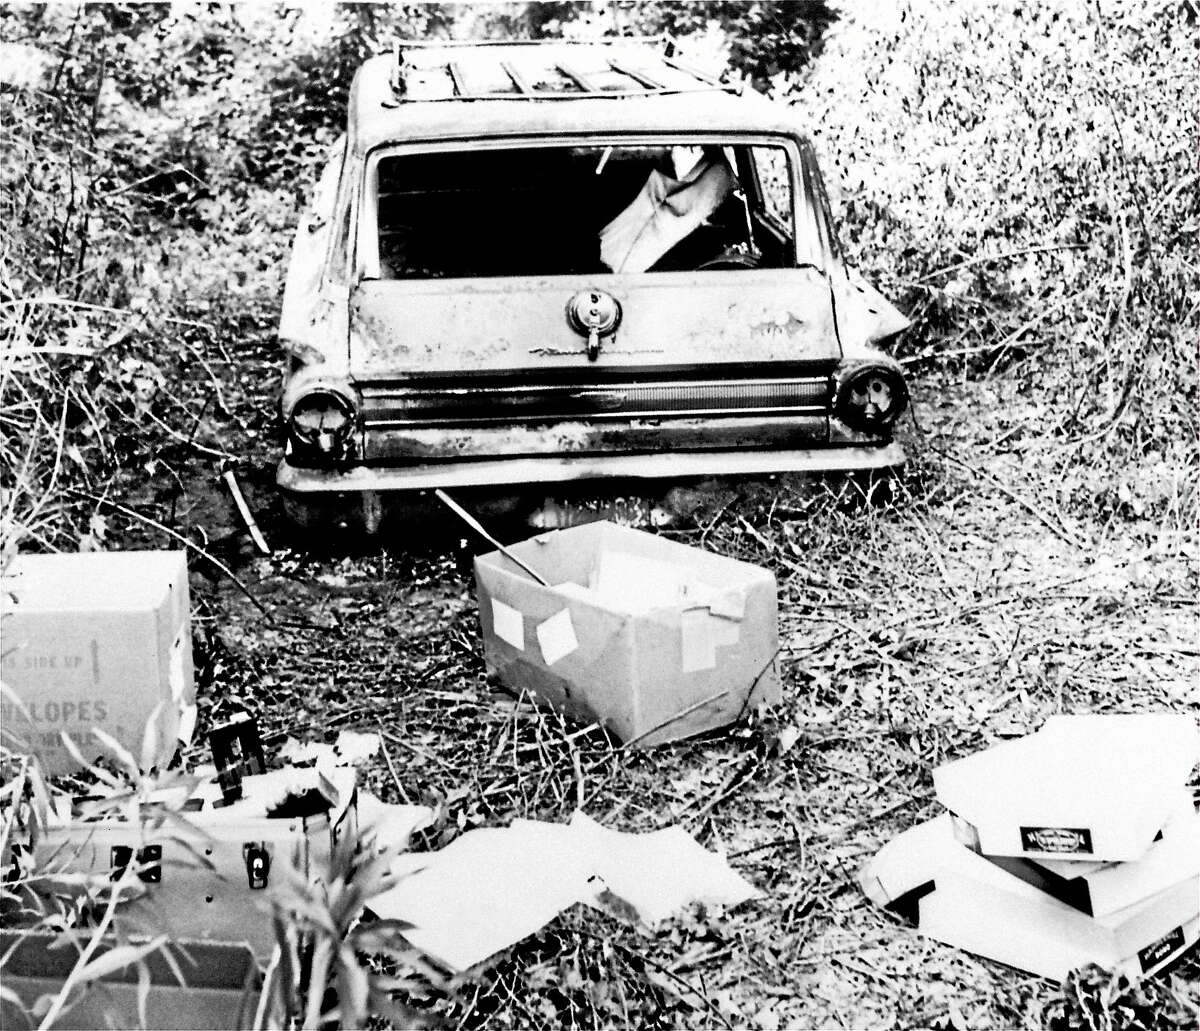 (AP Photo/Jack Thornell, File) This June 24, 1964 photo shows the burned station wagon of three missing civil rights workers, Michael Schwerner, Andrew Goodman, and James Chaney, in a swampy area near Philadelphia, Miss. The bodies of the men were found later in an earthen dam.